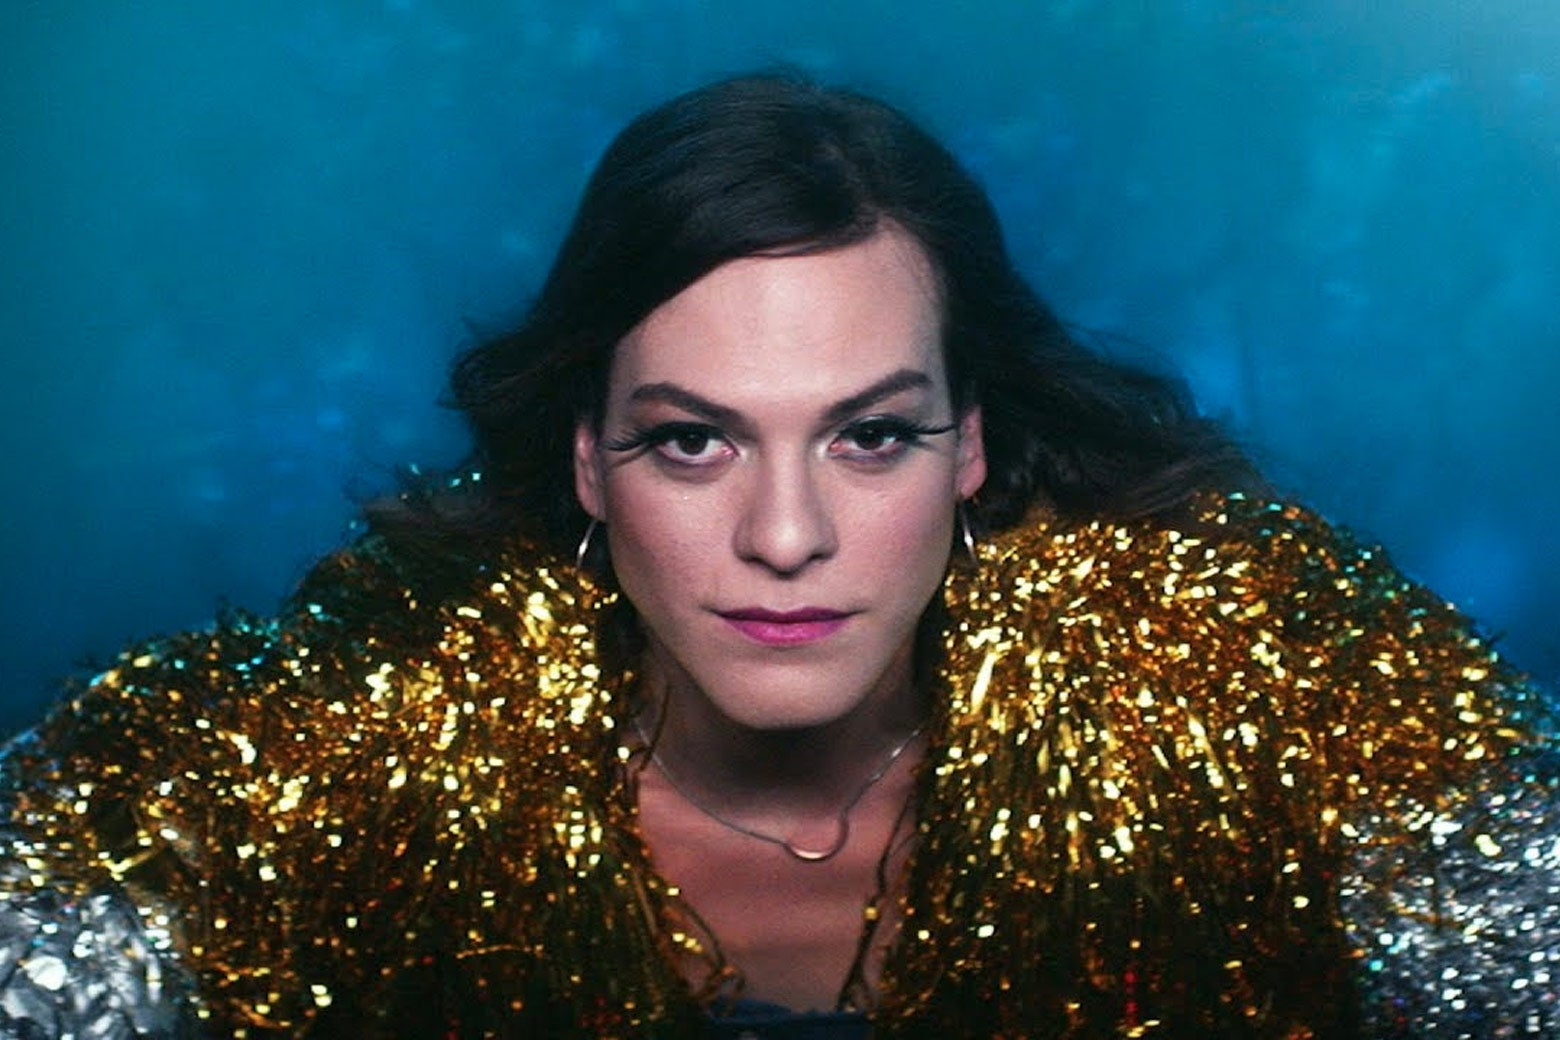 Daniela Vega as Marina in A Fantastic Woman.